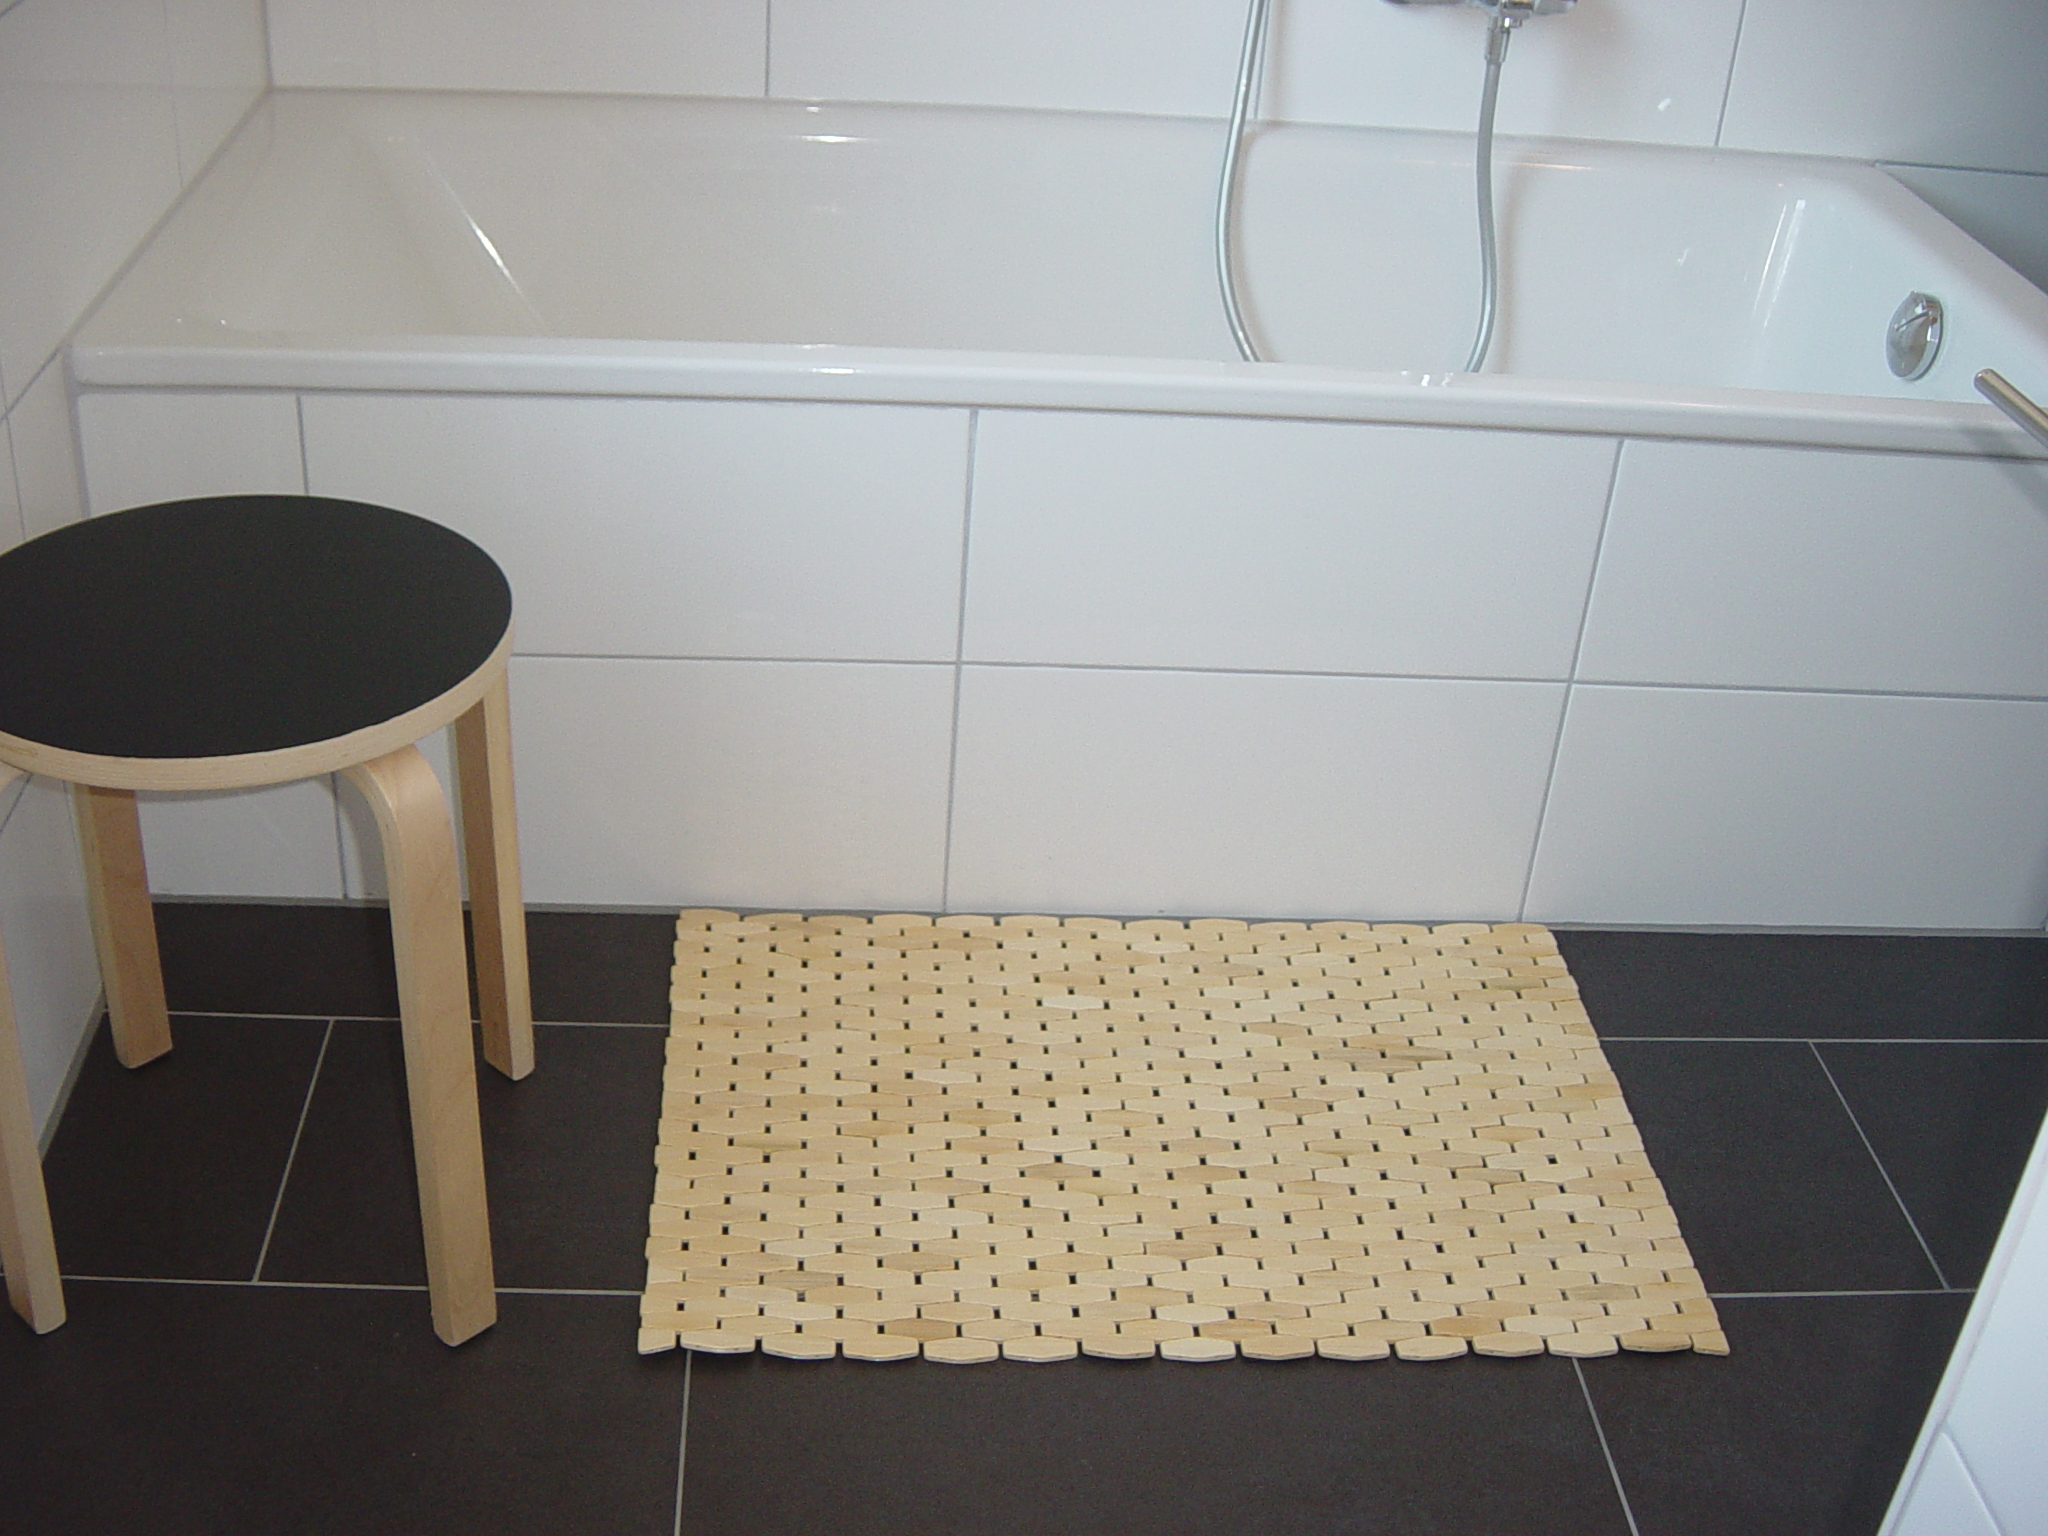 Bamboo Shower Mat: The Point Pluses | HomesFeed